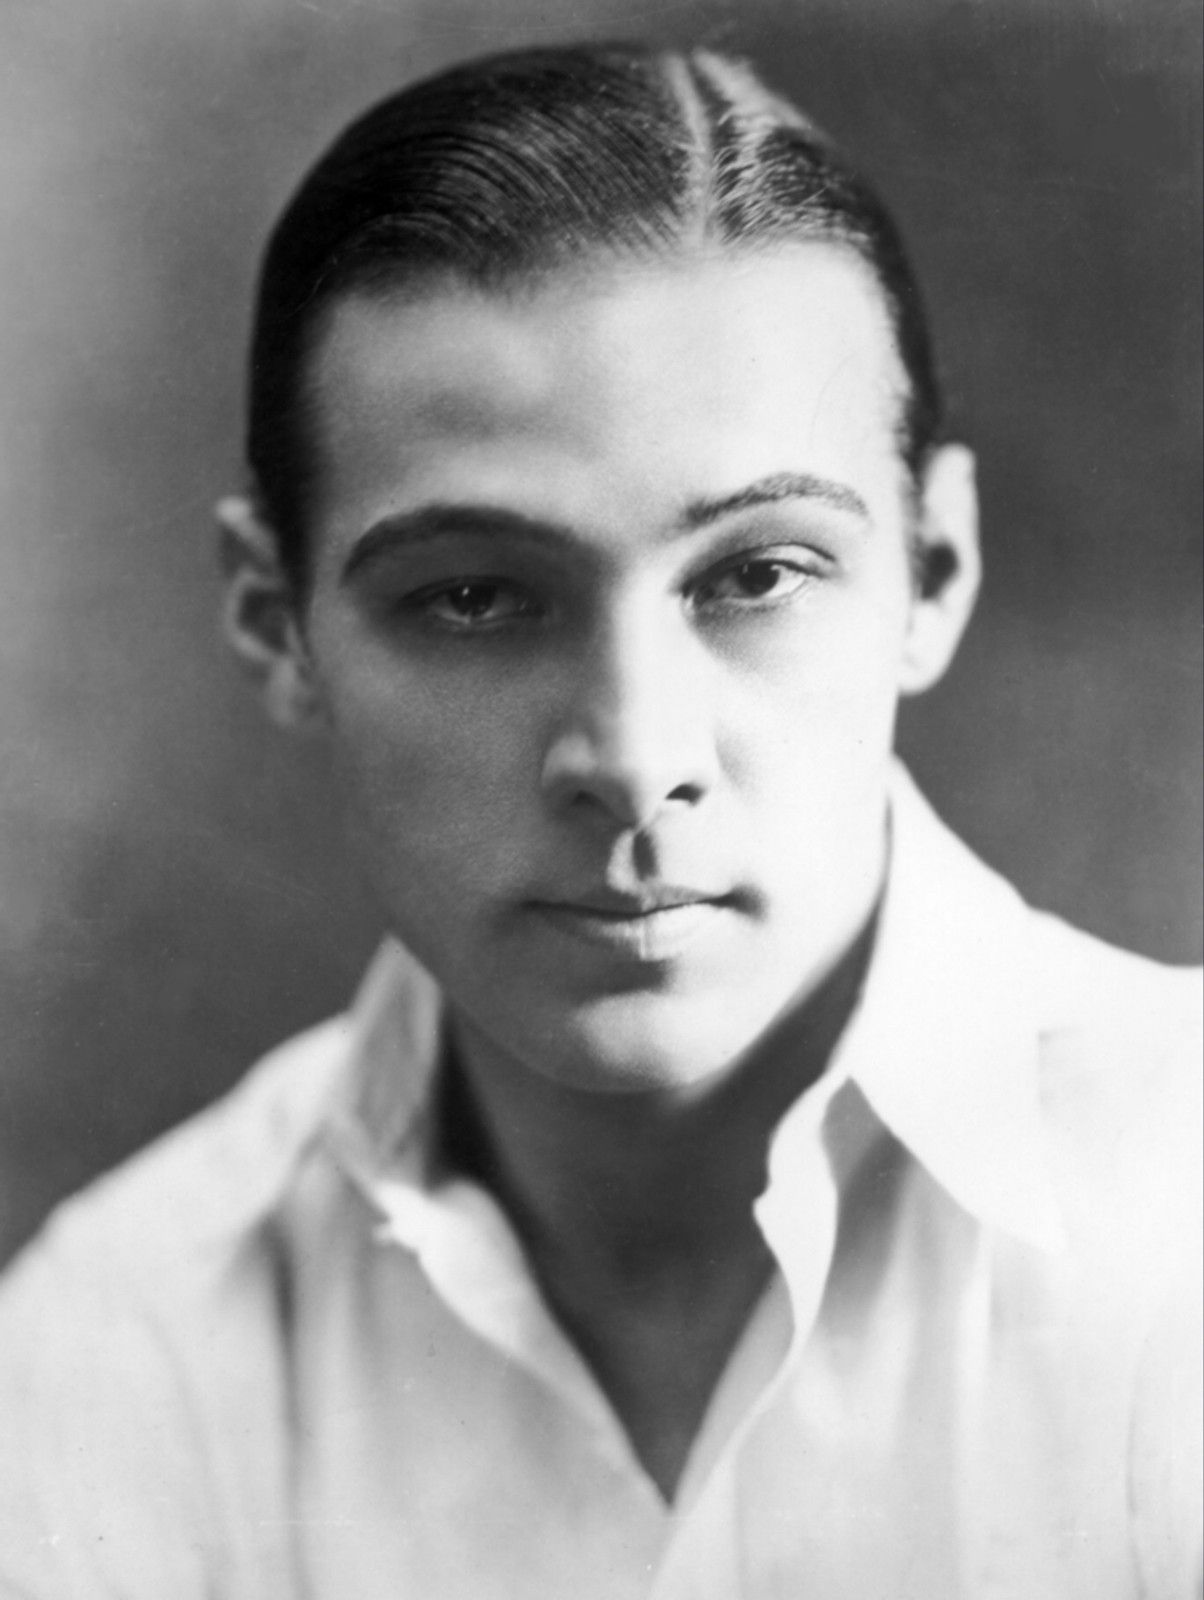 rudolph valentino close up photo hollywood 1920s silent